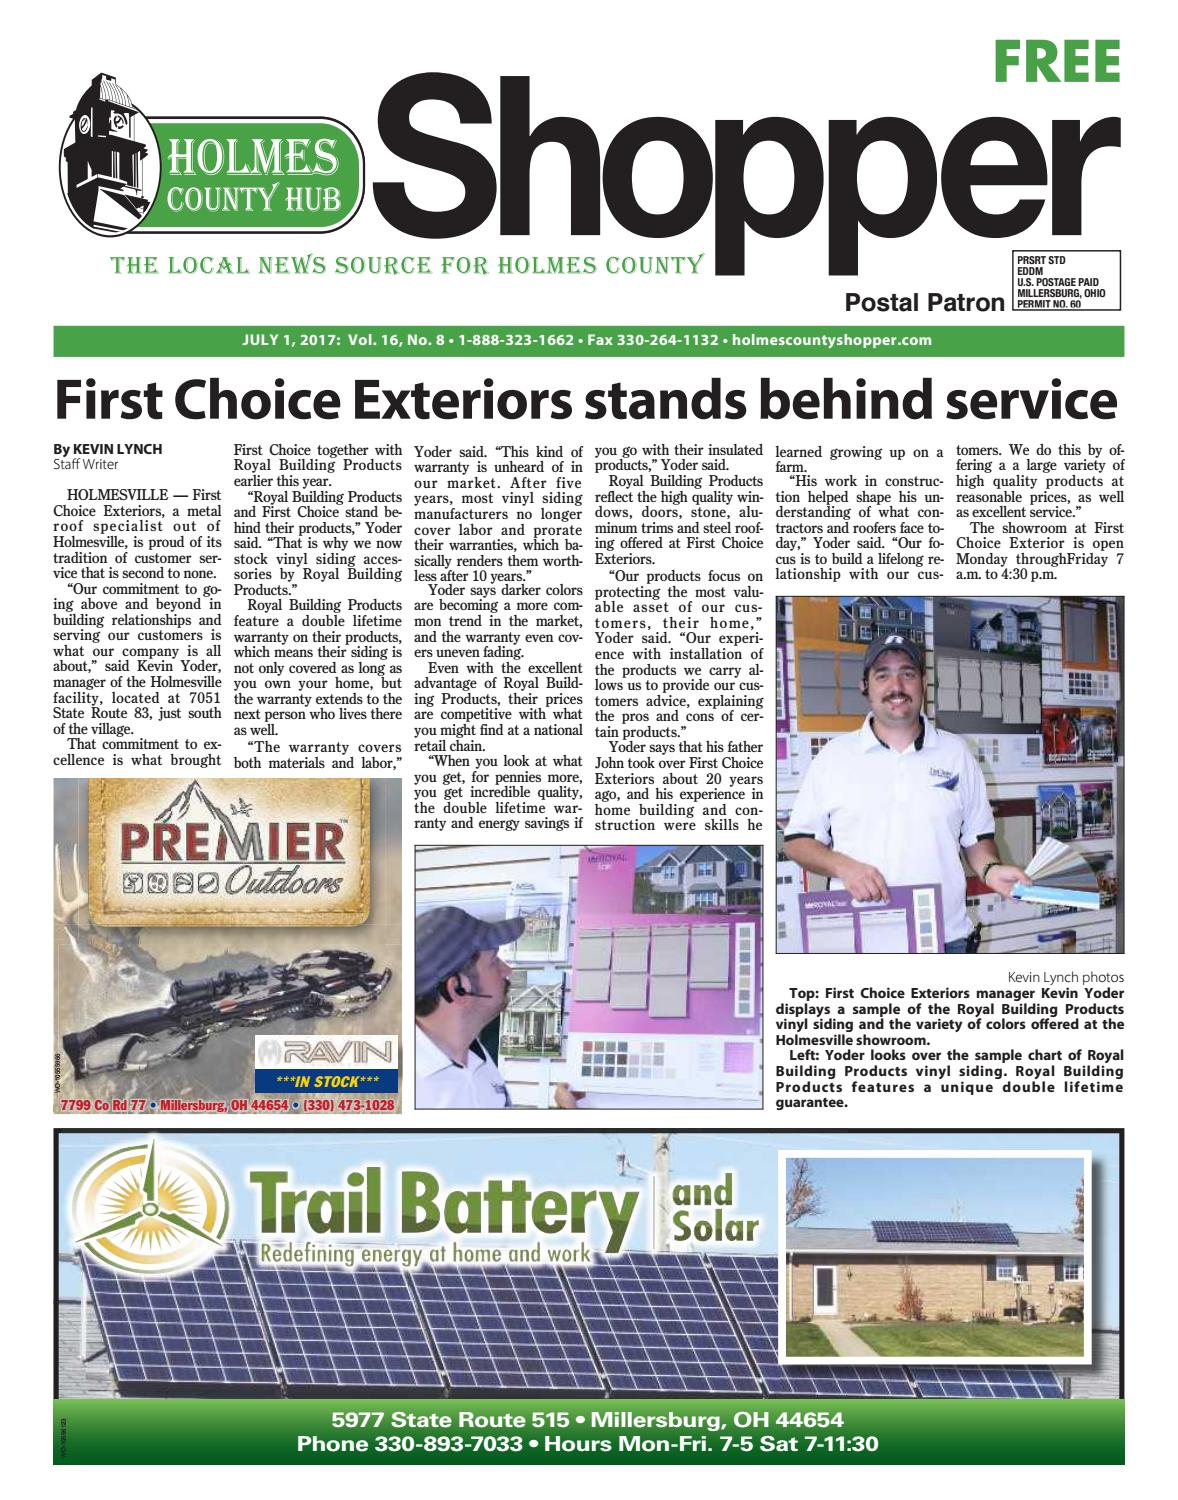 Holmes County Hub Shopper, July 1, 2017 by GateHouse Media ... on